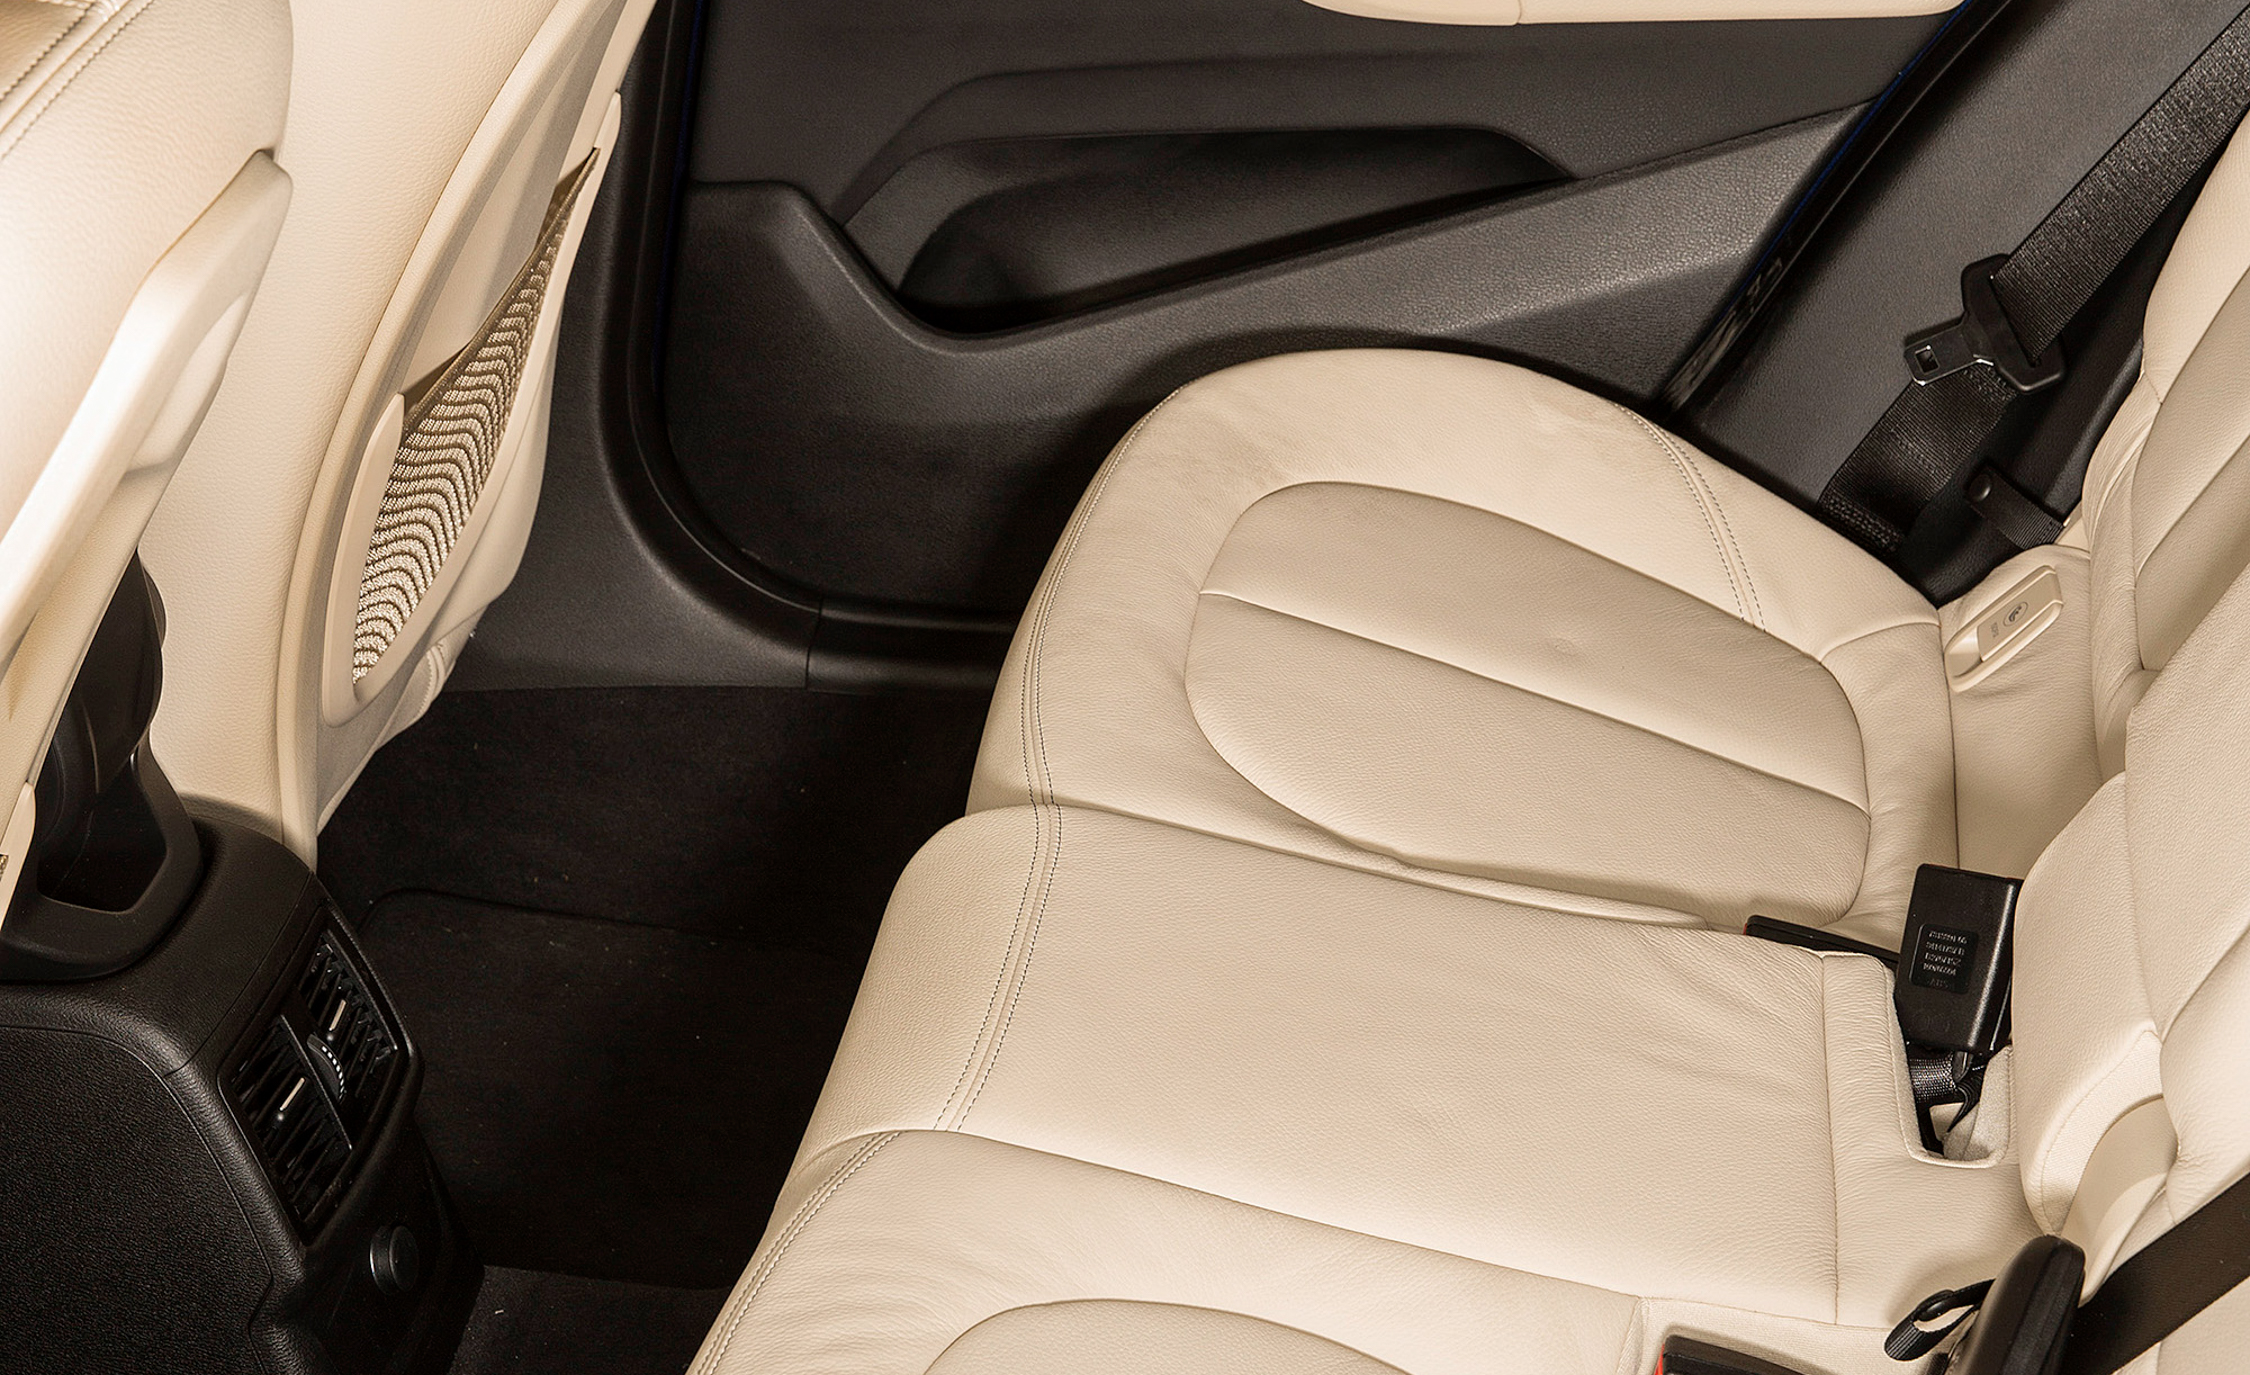 2016 BMW X1 Interior Seats Rear Details (View 19 of 36)